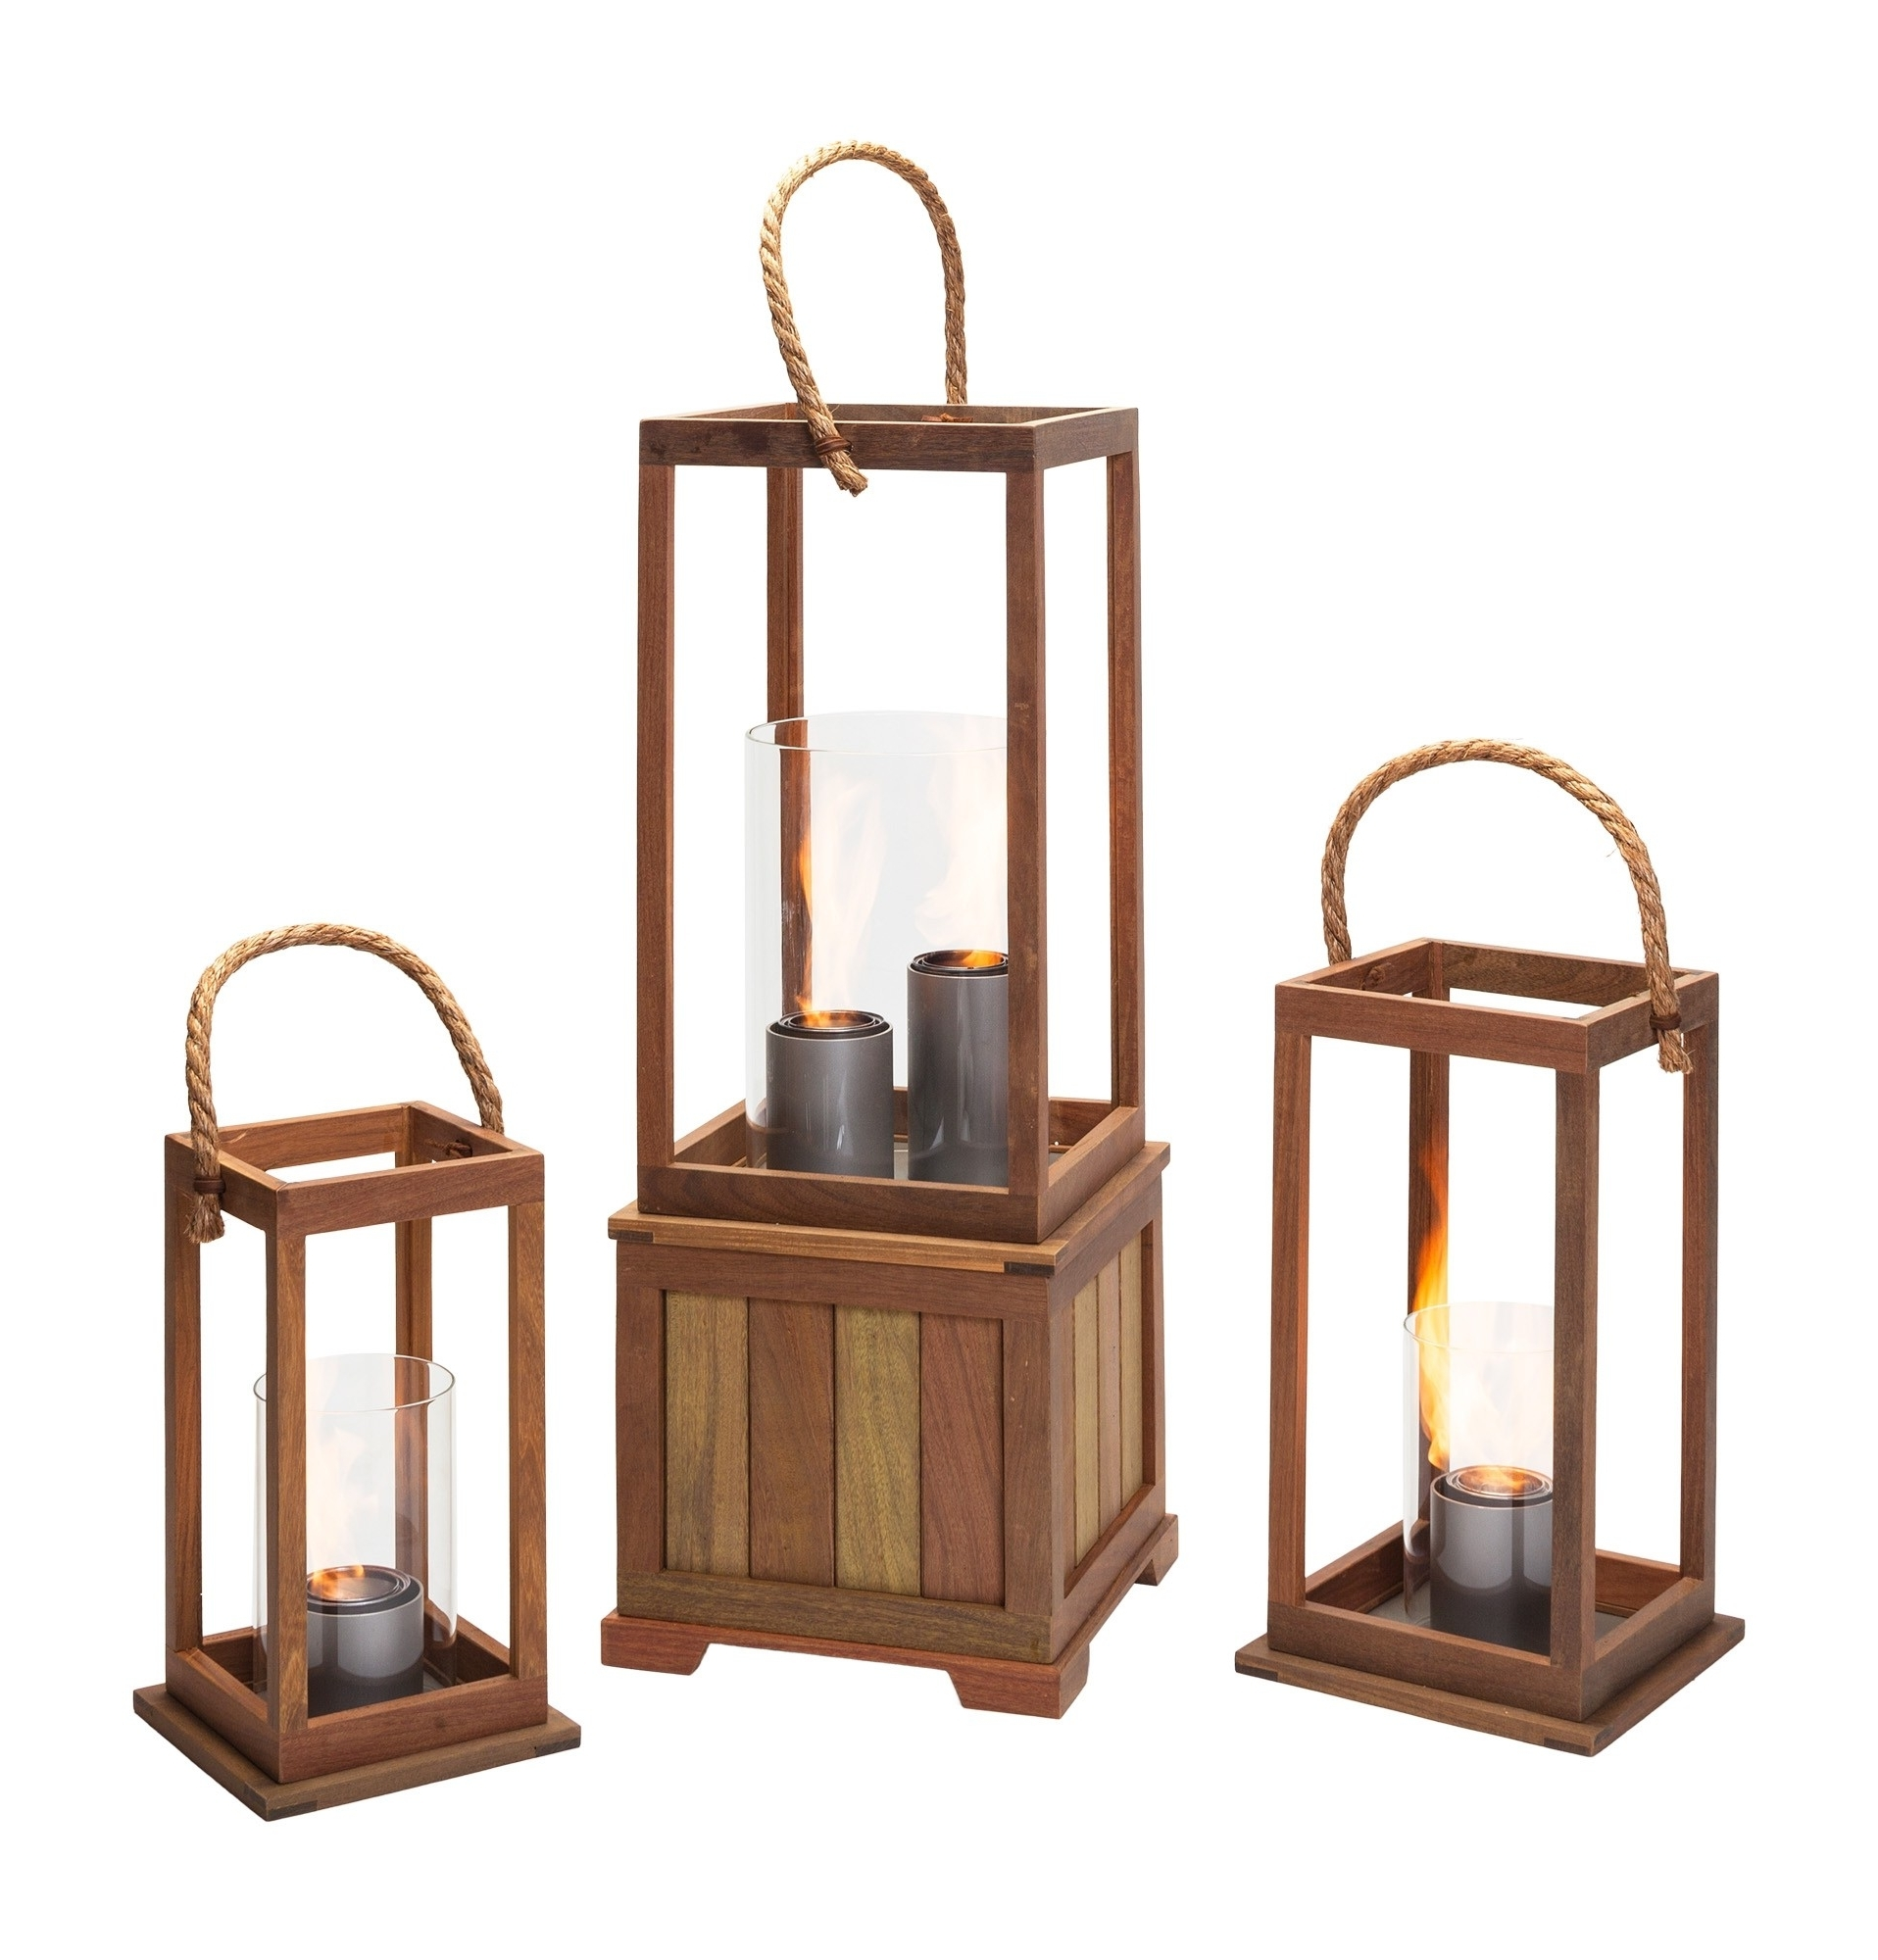 2019 Xl Outdoor Lanterns Within Sonoma 17 Inch Outdoor Lantern In Ipe Woodnorthcape Fire (Gallery 15 of 20)